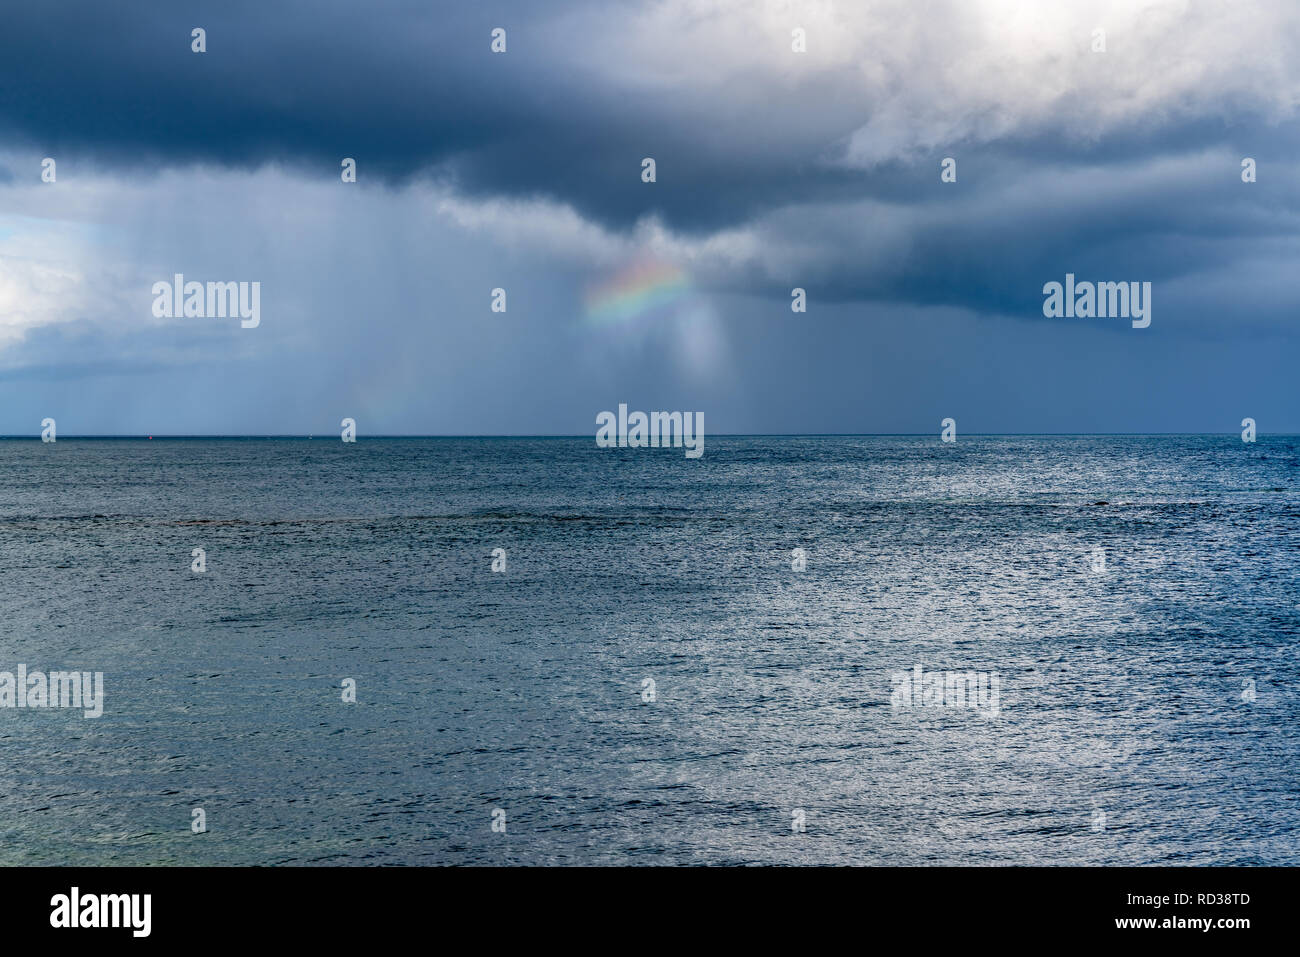 Rainclouds and a rainbow over the North Sea in Benthall, Northumberland, England, UK - Stock Image